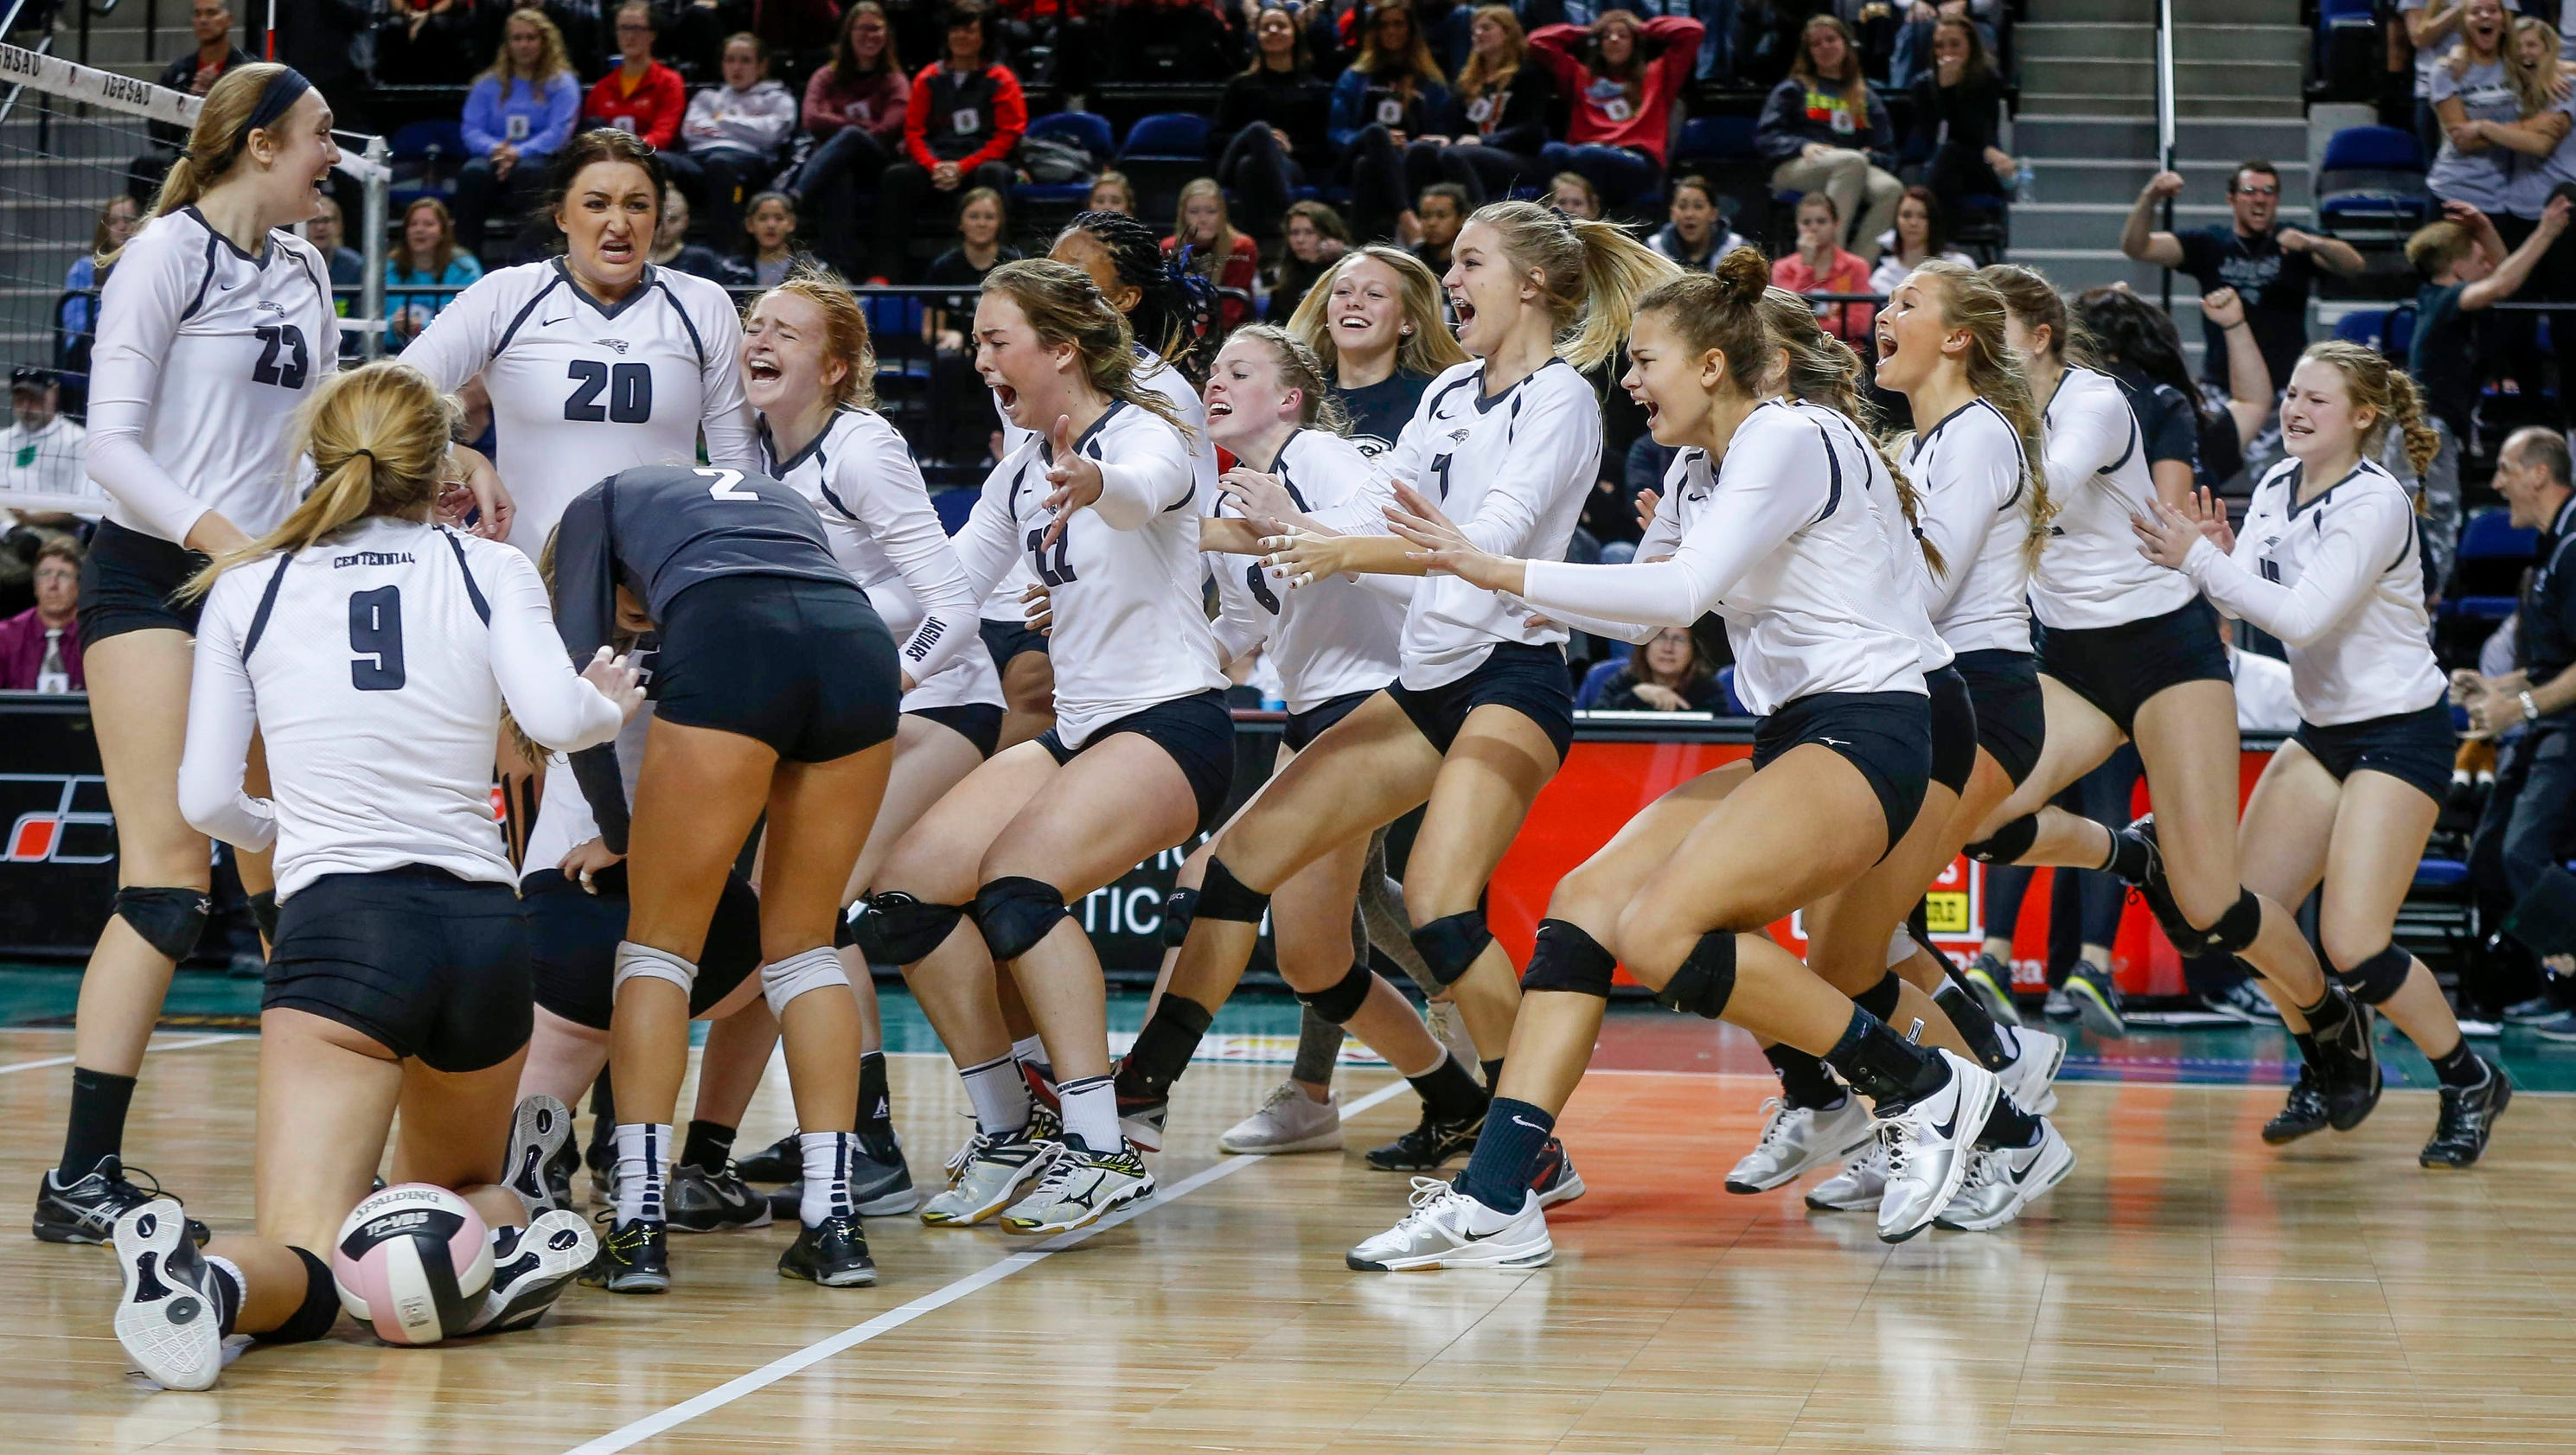 Photos: Centennial wins third consecutive 5A volleyball title